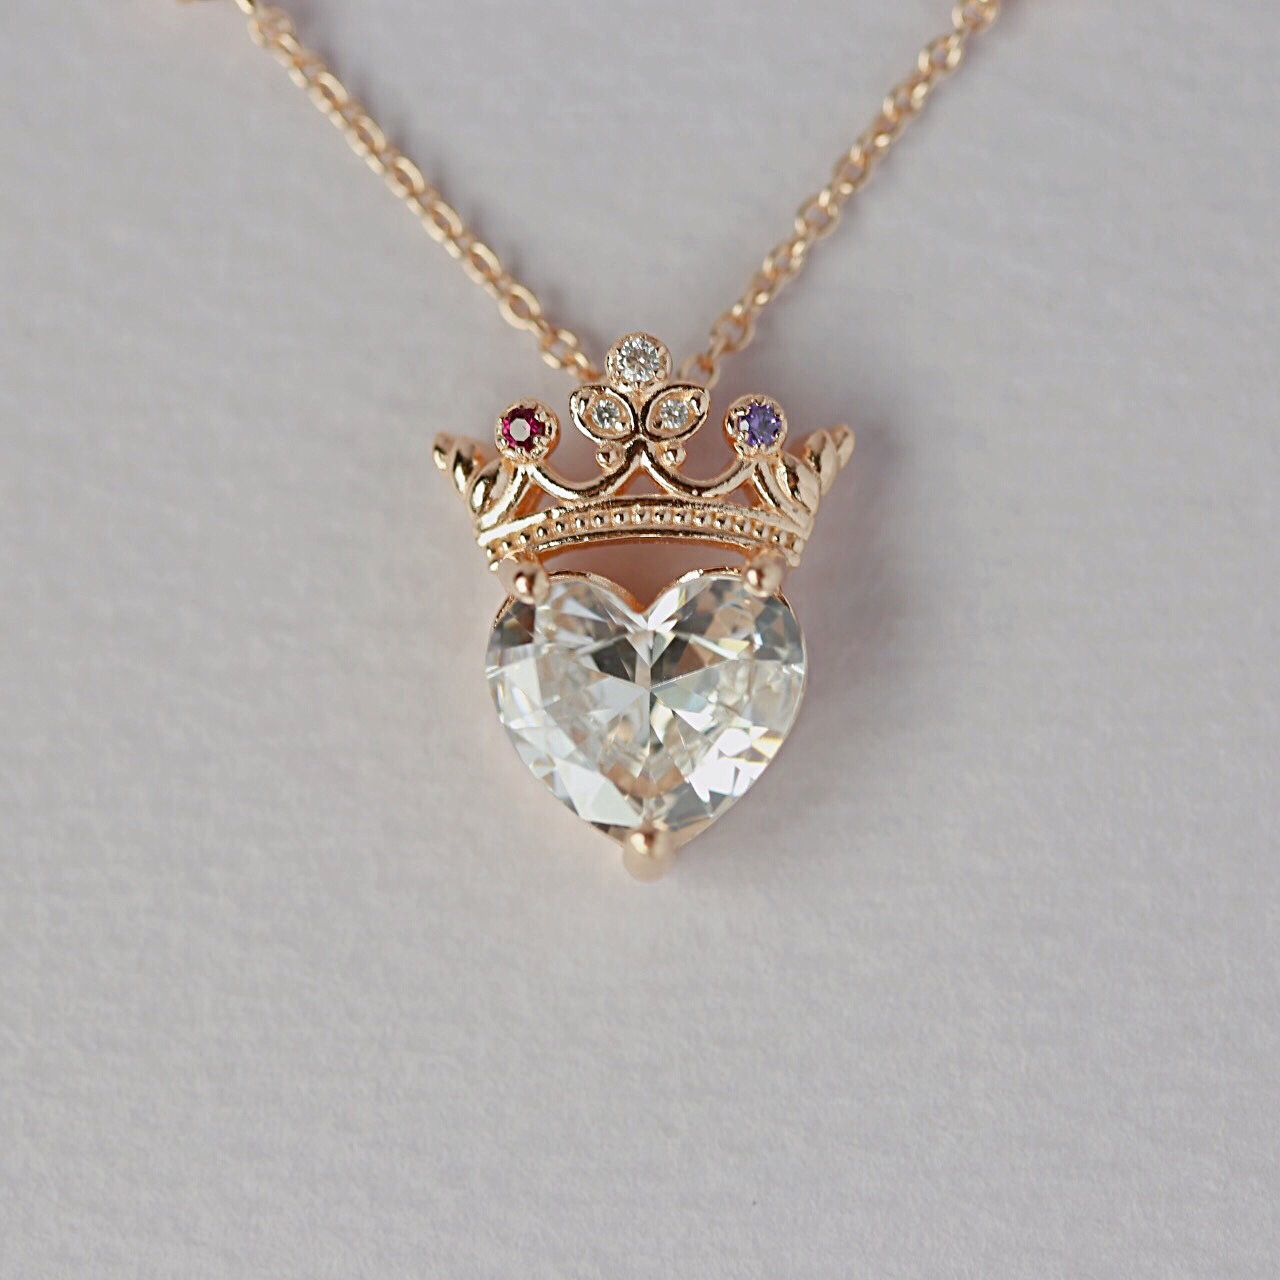 en lab crown zoom gold mv kaystore necklace to sapphires zm kay created rose white hover